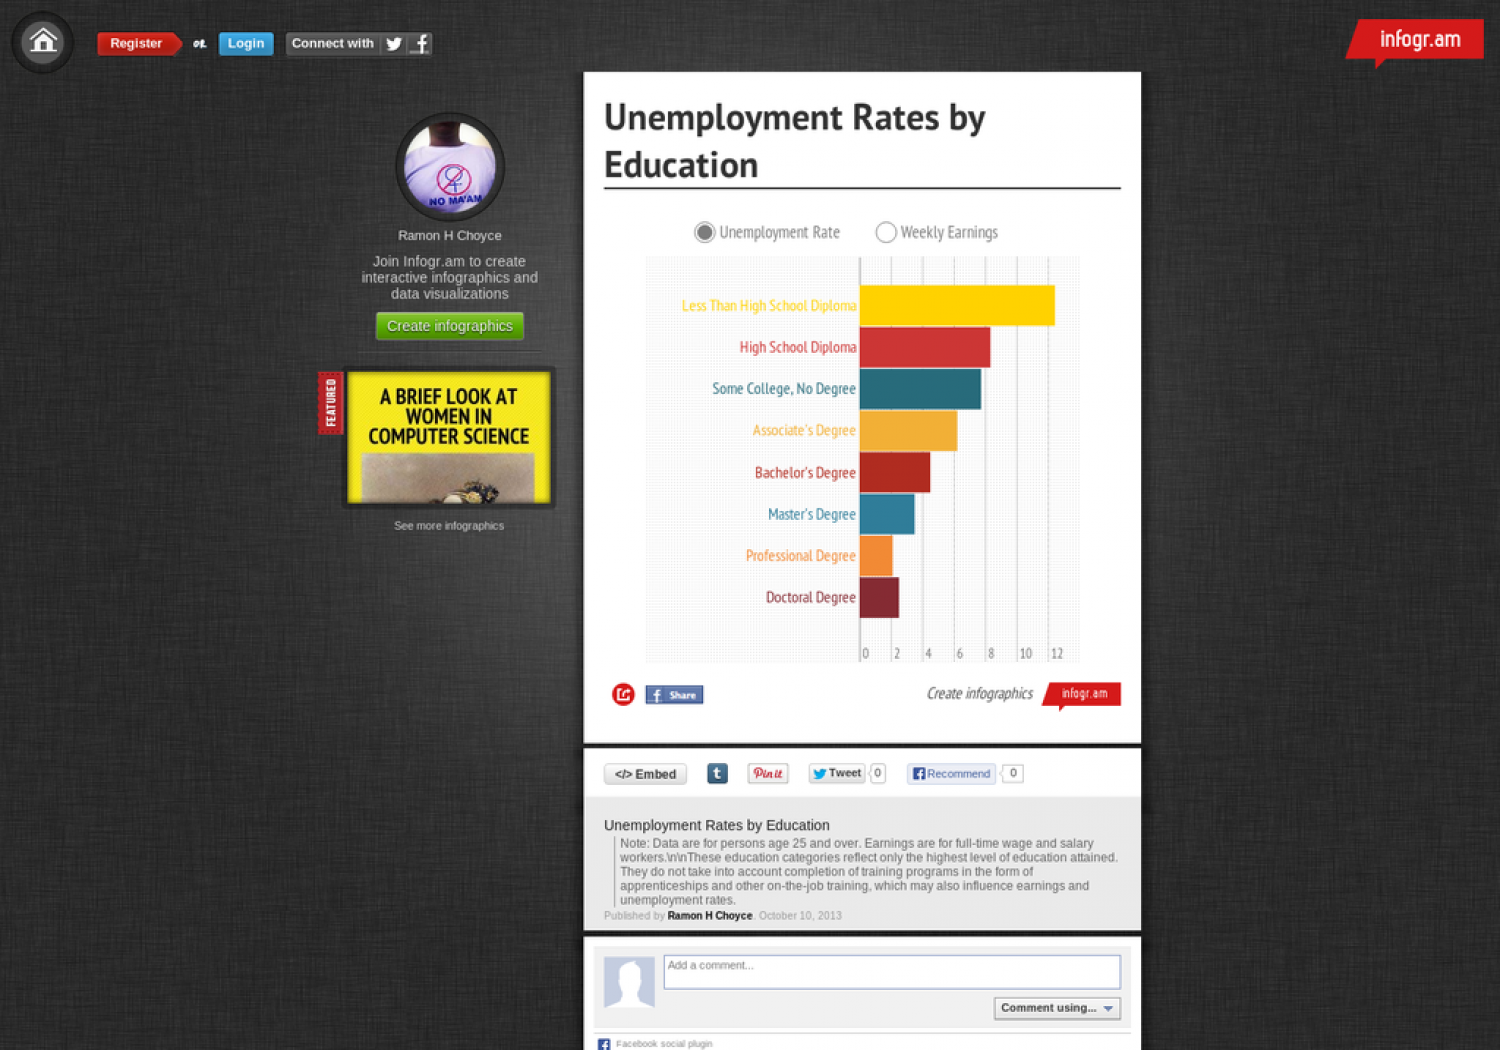 Earnings & Unemployment Rates by Education Infographic